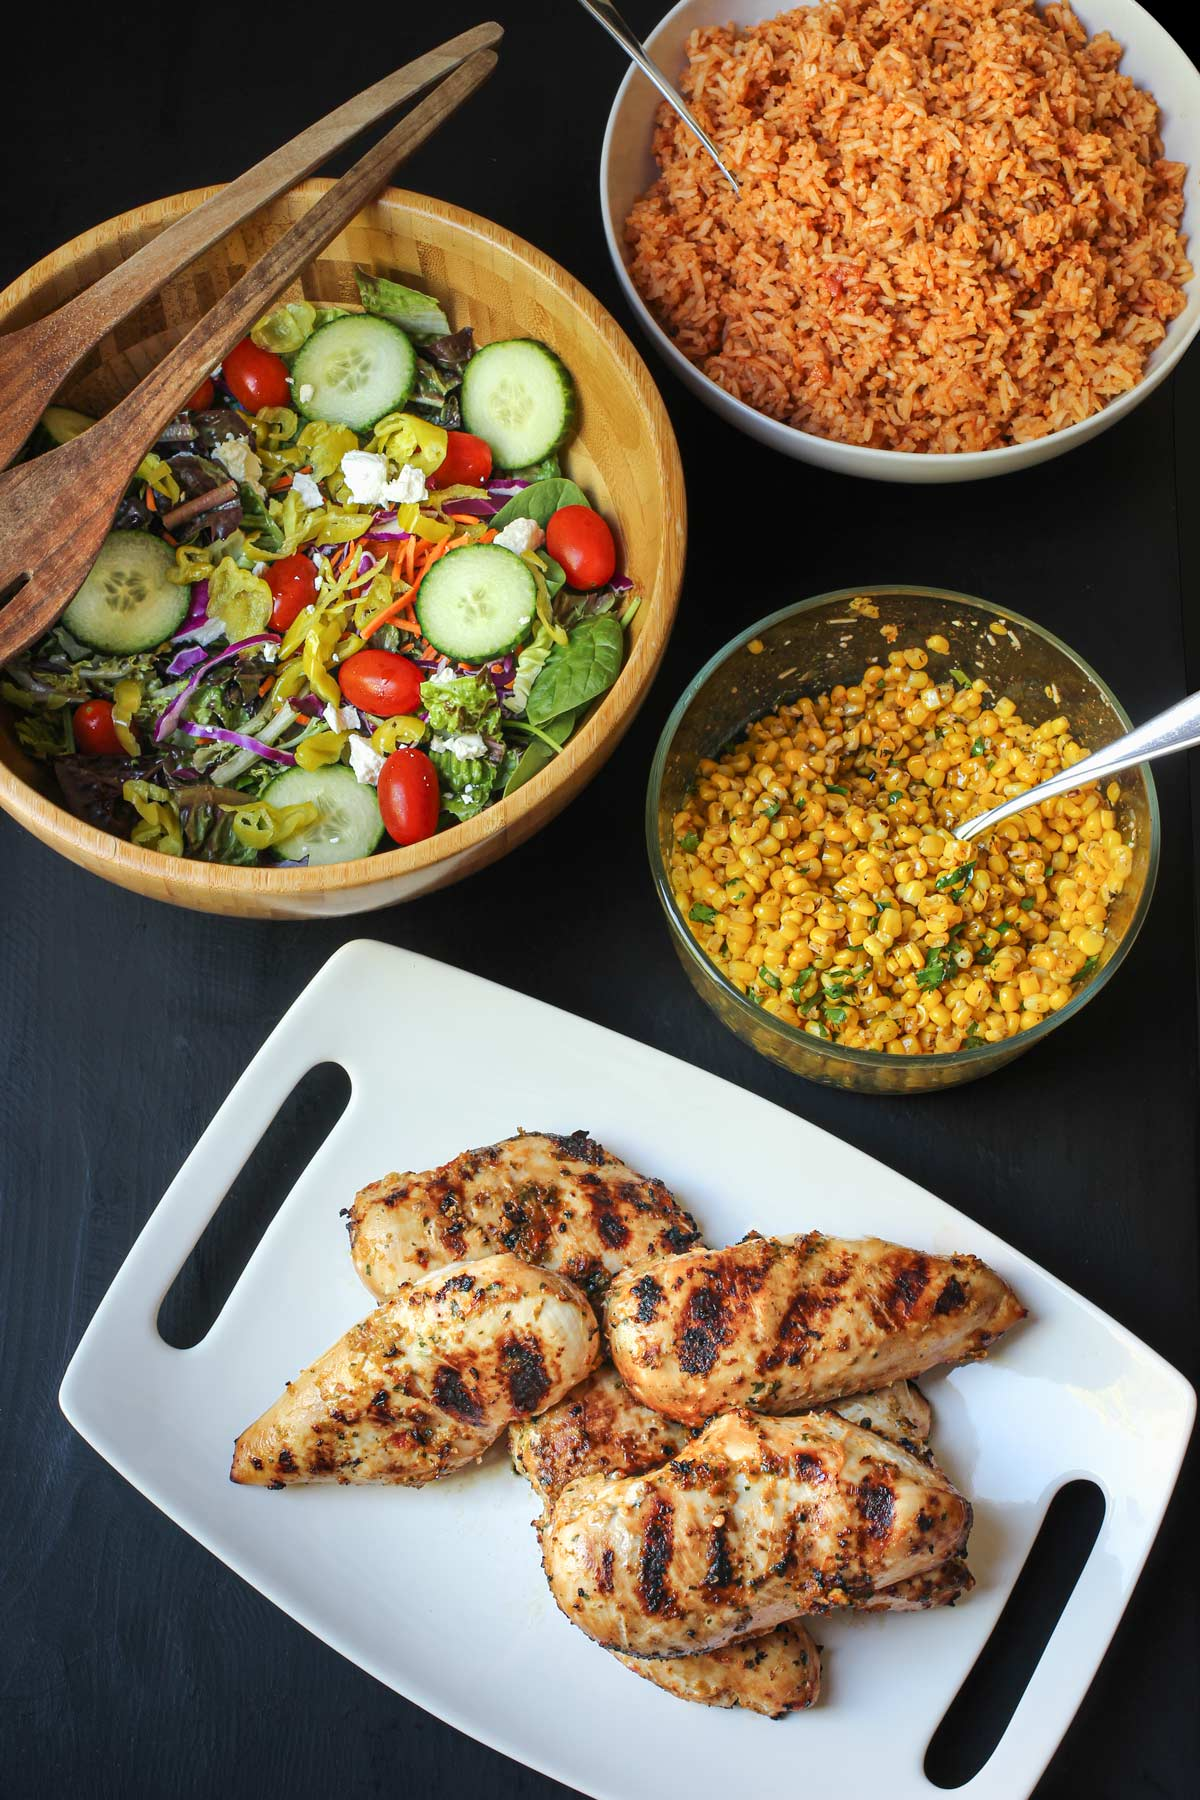 dinner table set with a platter of grilled spicy chicken and bowls of salad, corn, and rice.